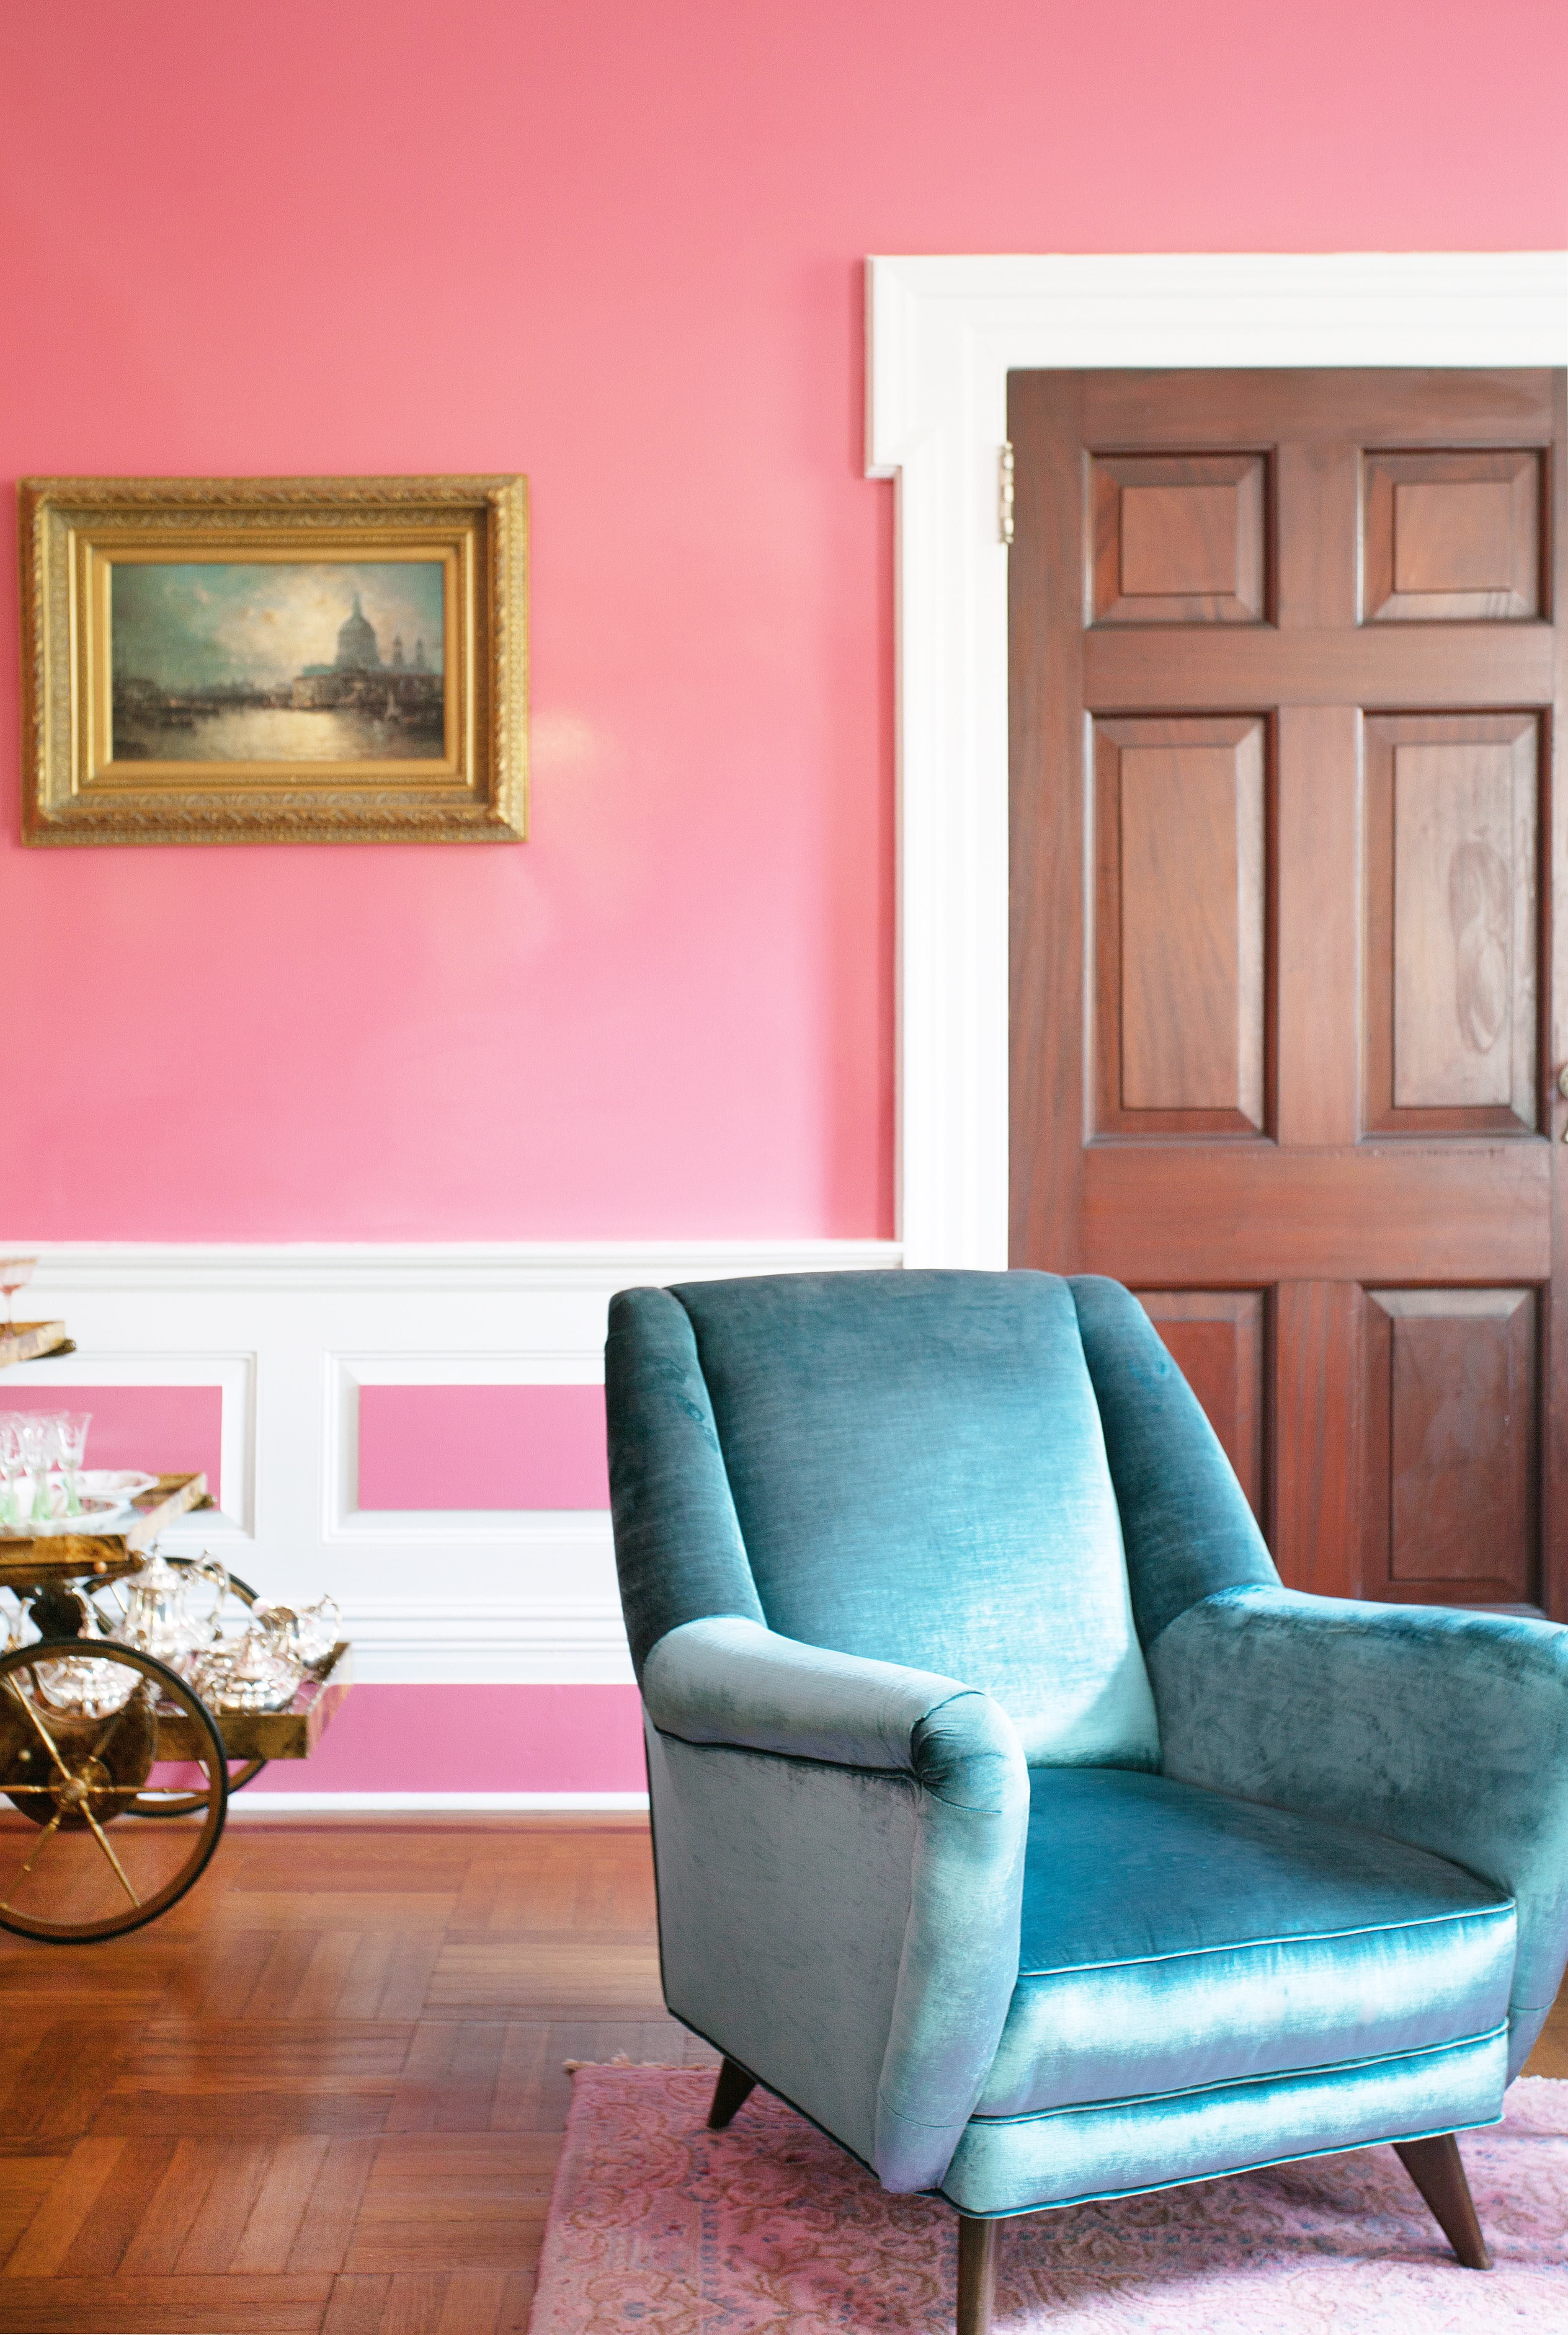 Turquoise pink turquoise pink bohemian interior design interior design inspiration